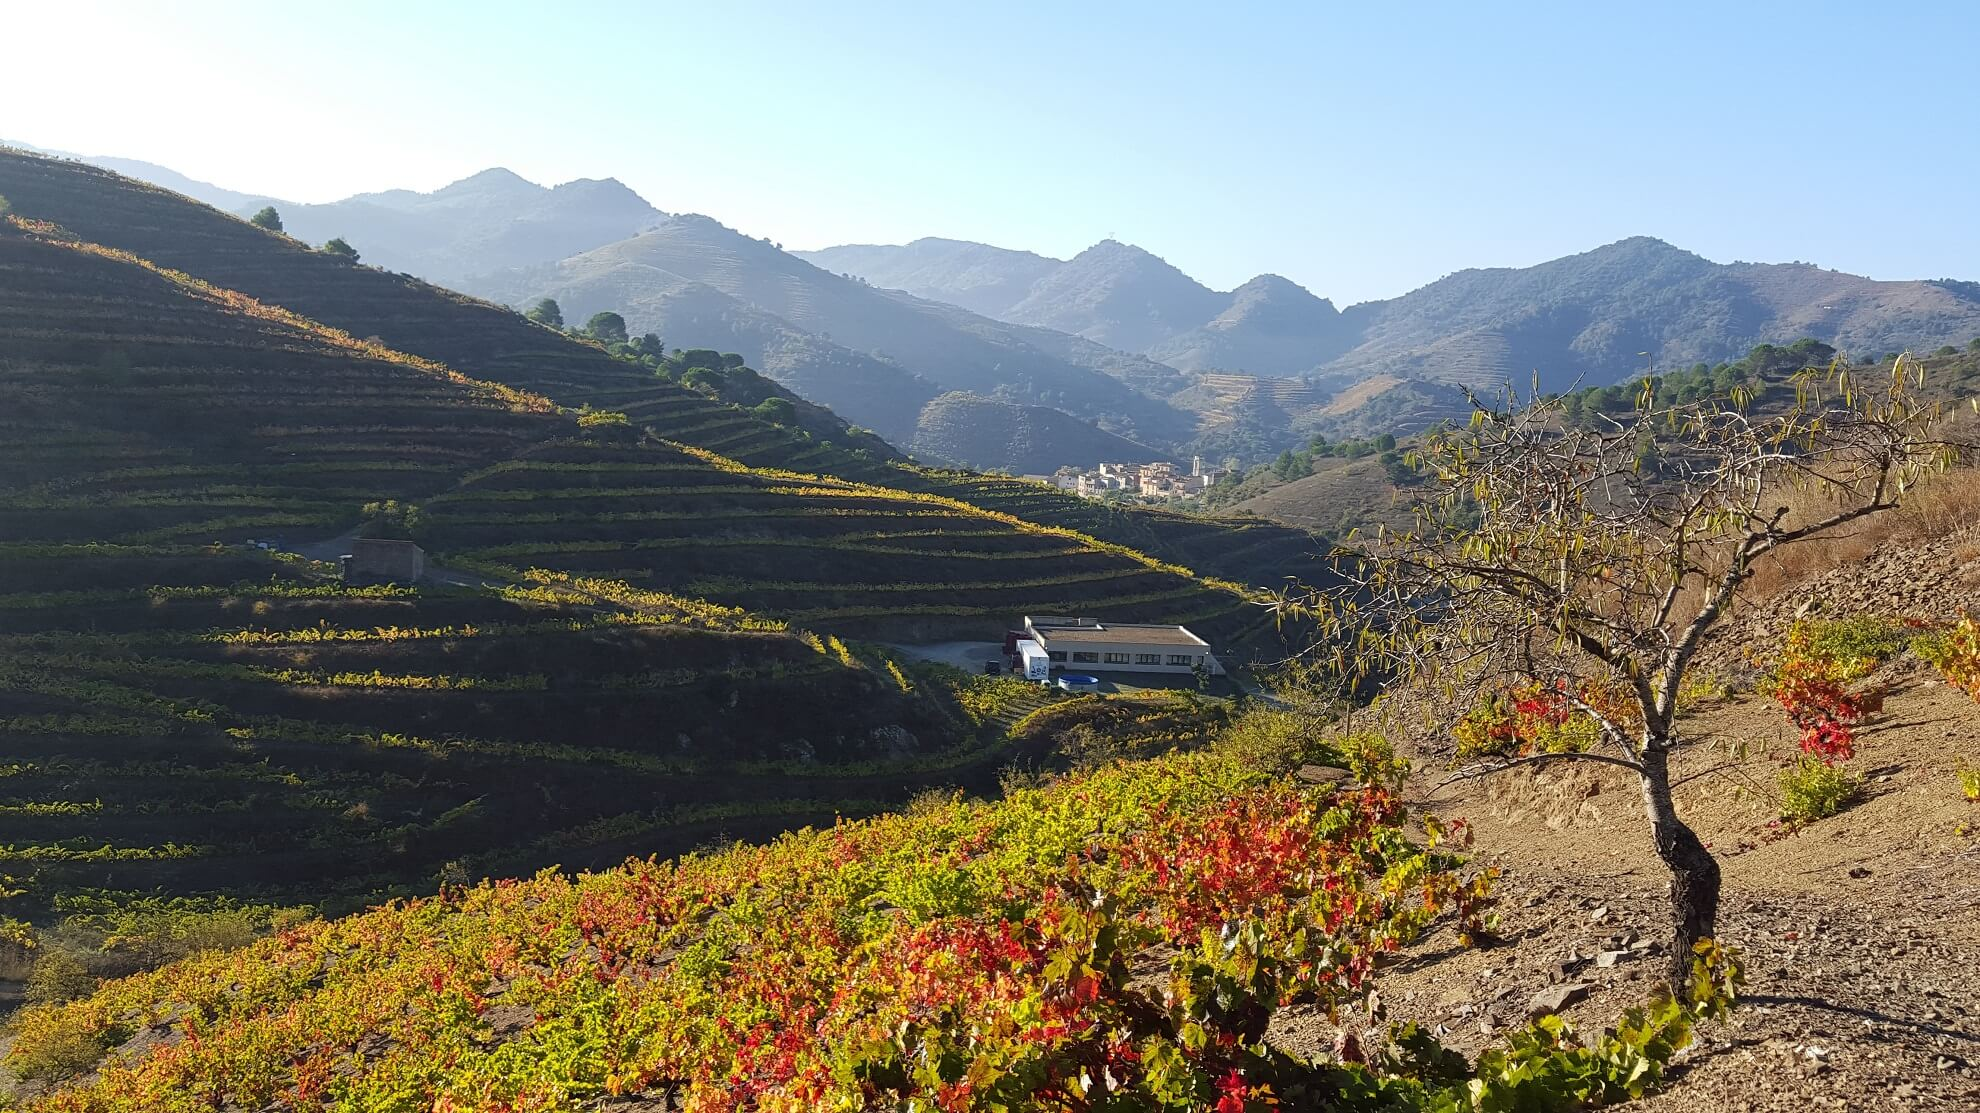 Porrera vineyards in the morning